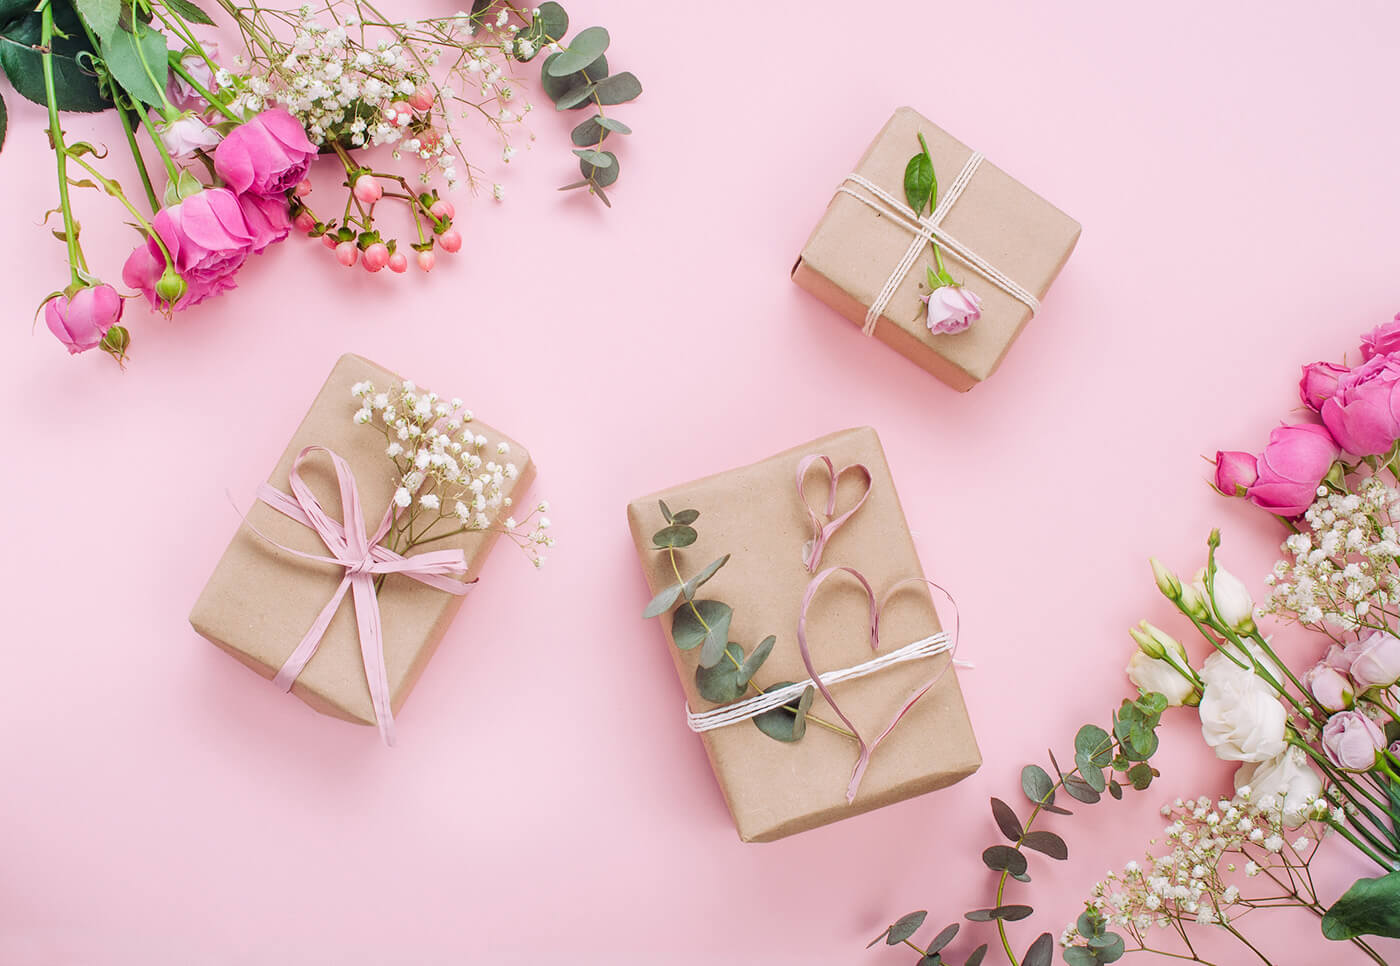 How Much Should You Spend on a Wedding Gift? - Experian